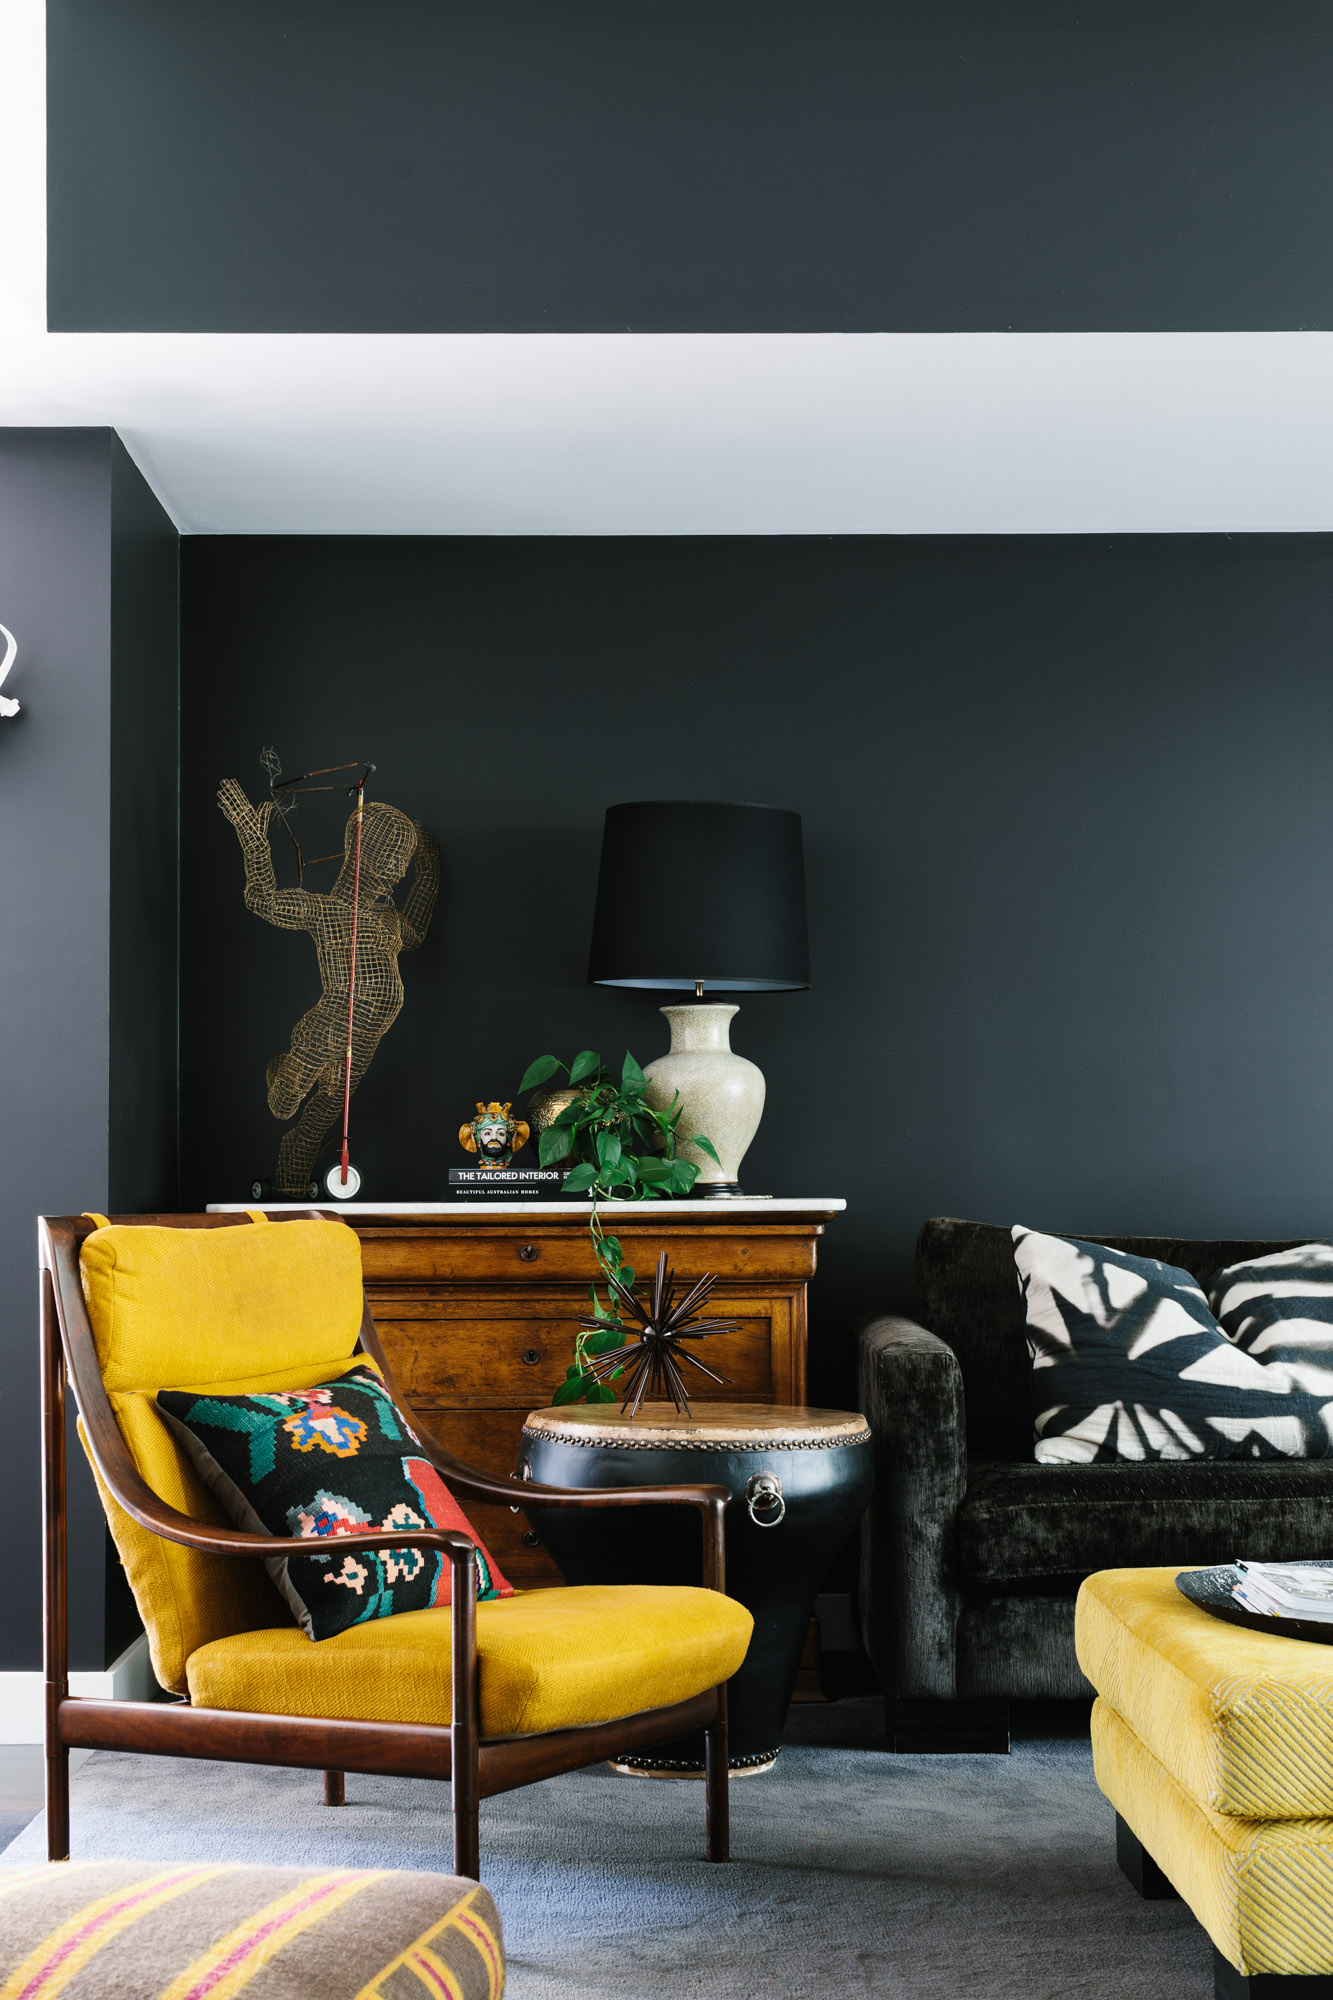 Melbourne interior photographer, Marnie Hawson for Steph Desira, Malvern East. Styling by Inside Story.